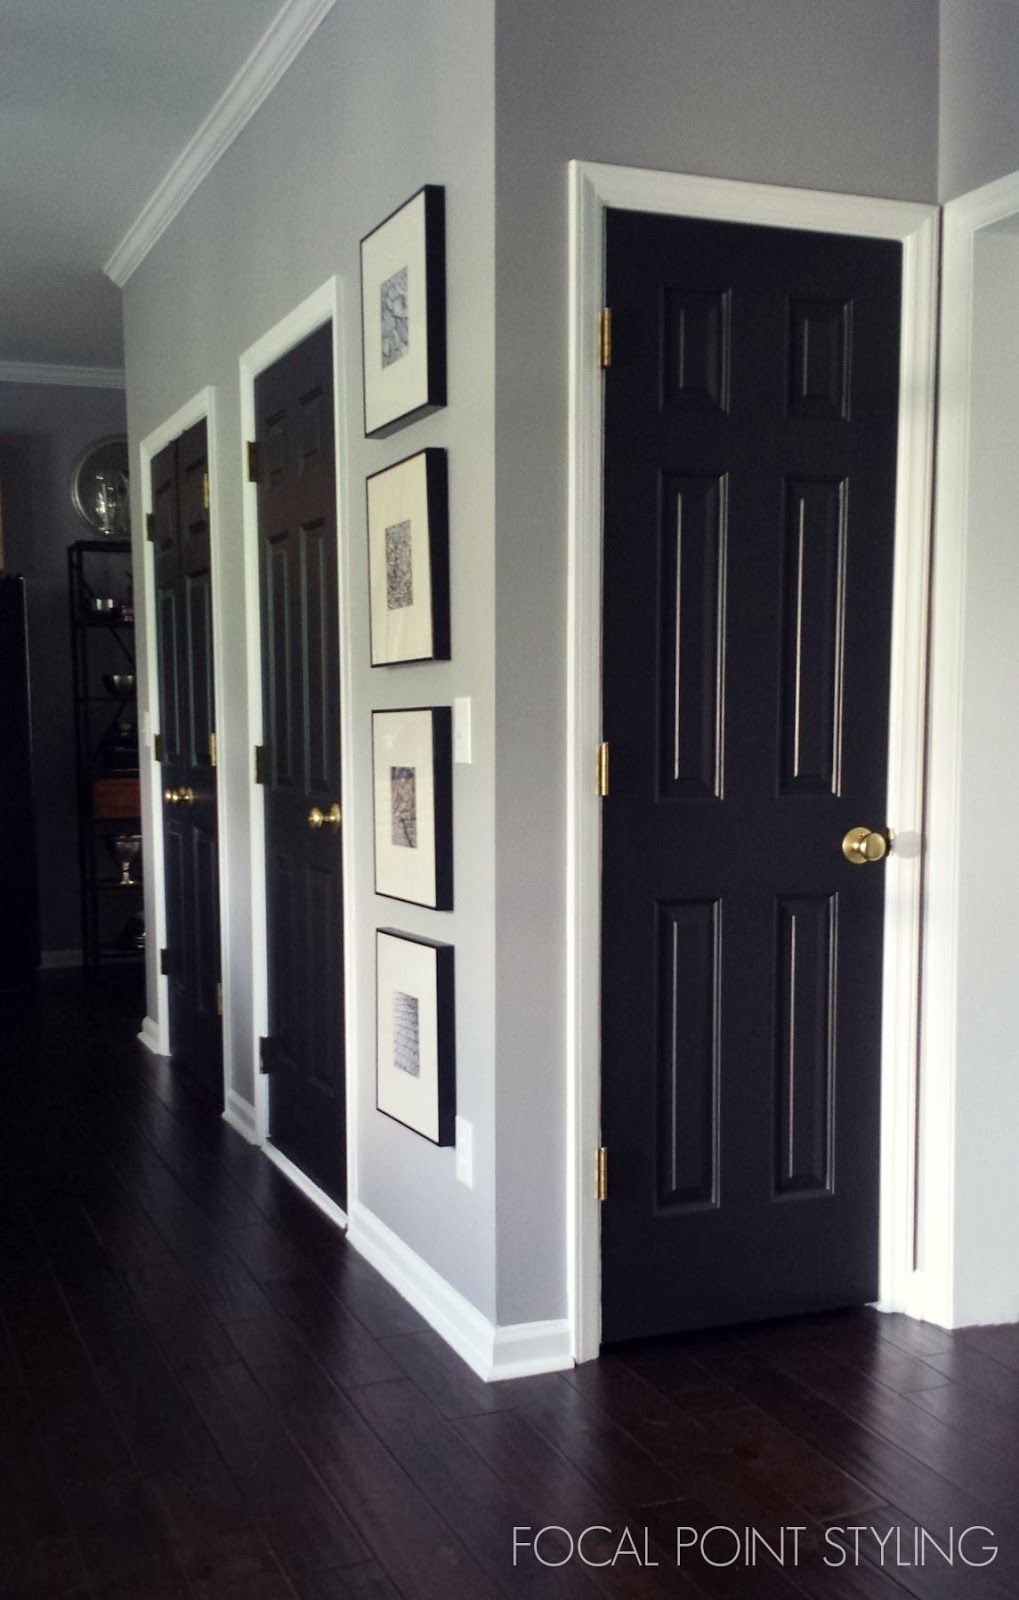 Focal point styling painting interior doors black updating